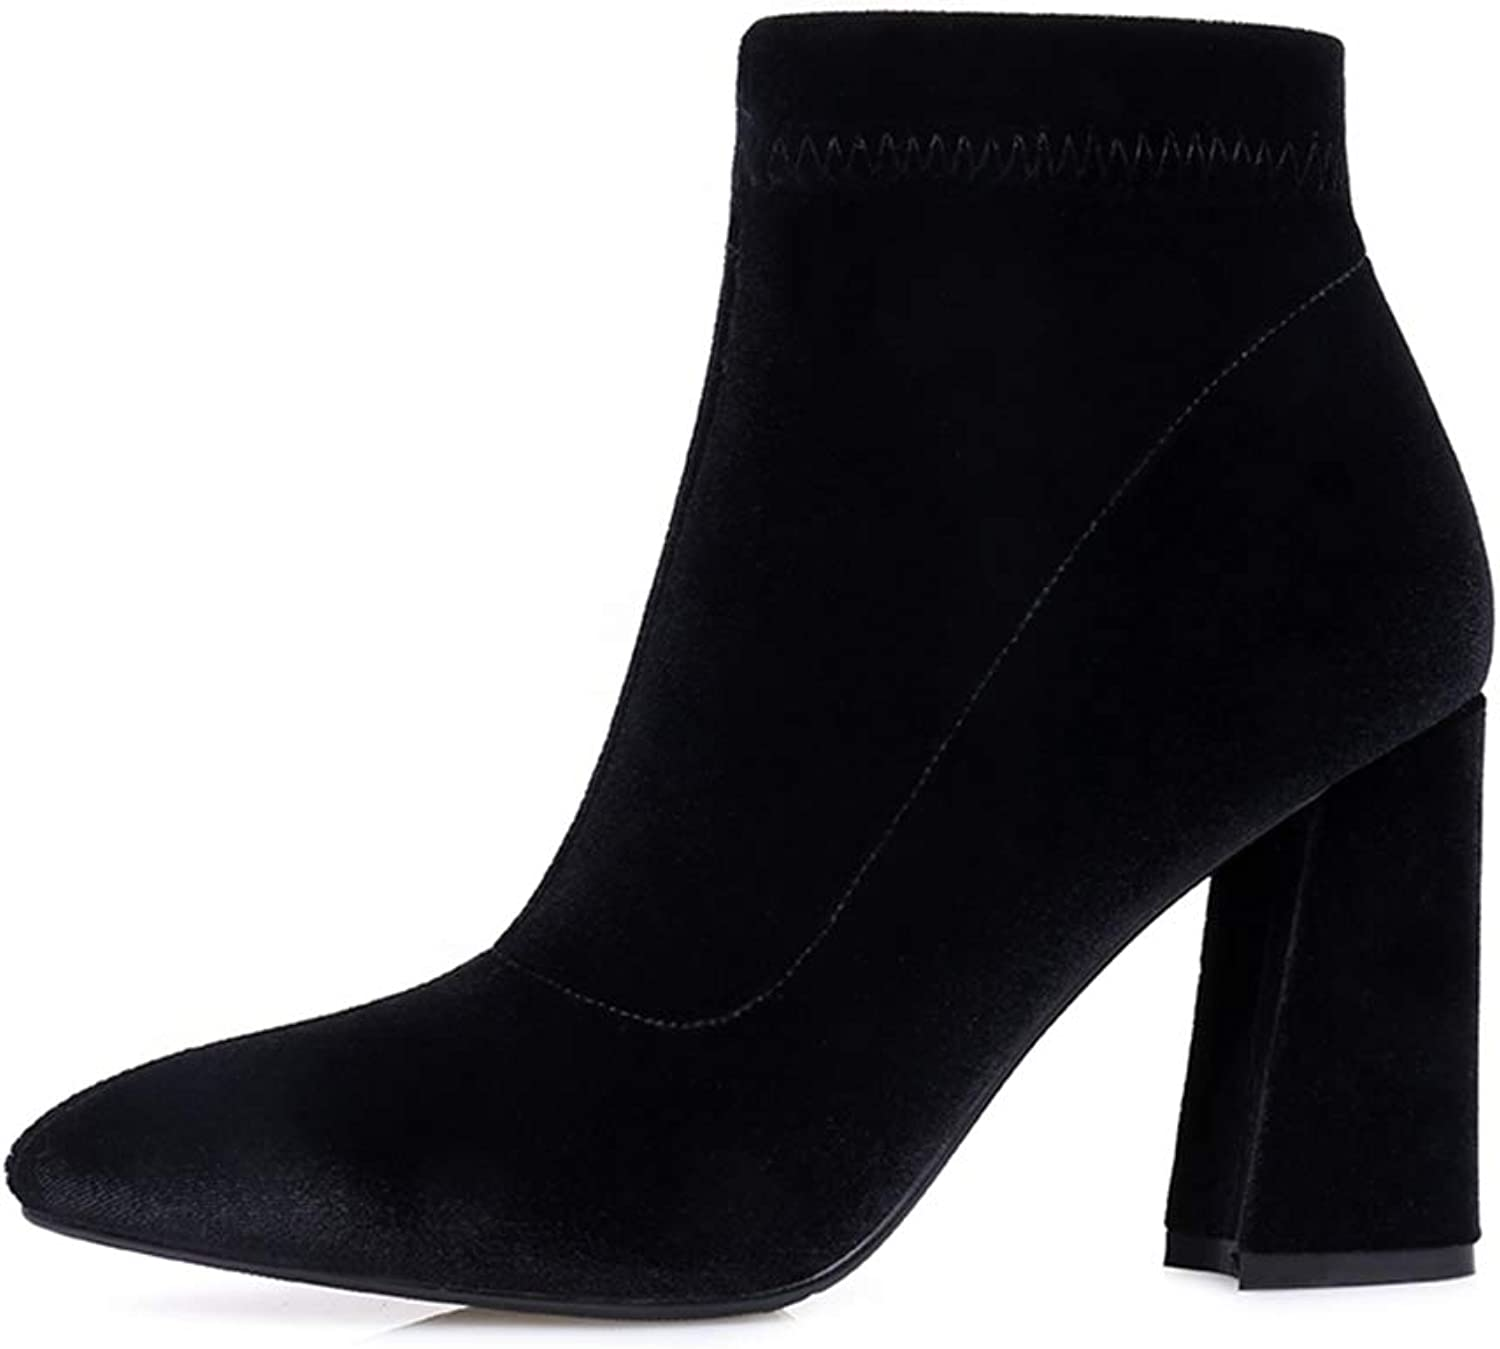 Hoxekle Woman Charming Ankle Boots Pointed Toe Velvet Autumn Sexy High Chunky Heel Side Zipper Female Winter Footwear